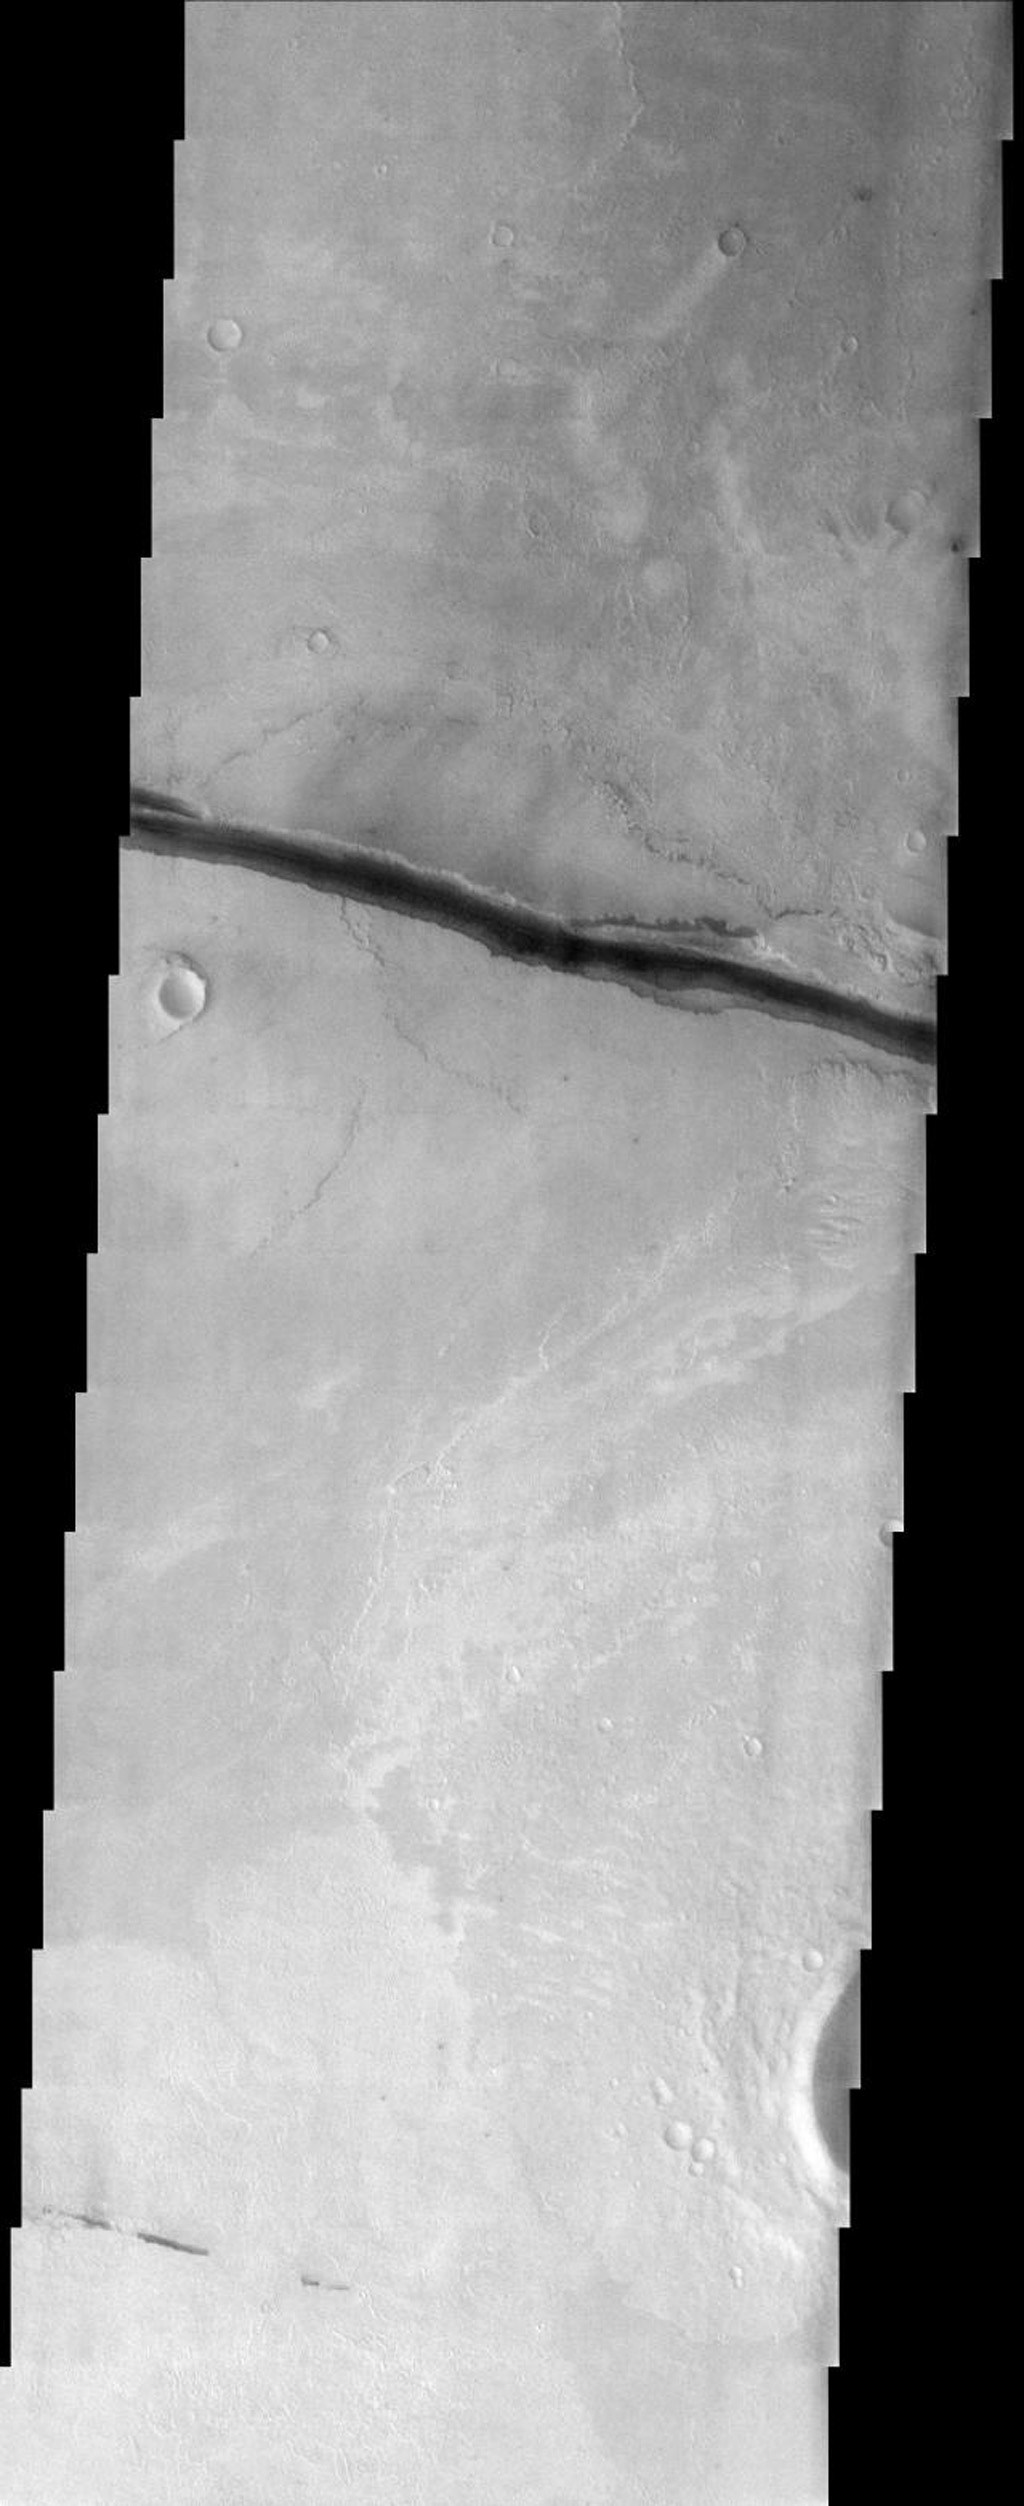 NASA's Mars Odyssey spacecraft captured this image in Sept 2003, shows that crustal fractures may have been the source for outpourings of water and lava. Conversely, the fractures may have formed after the fluvial and volcanic activity in this region.